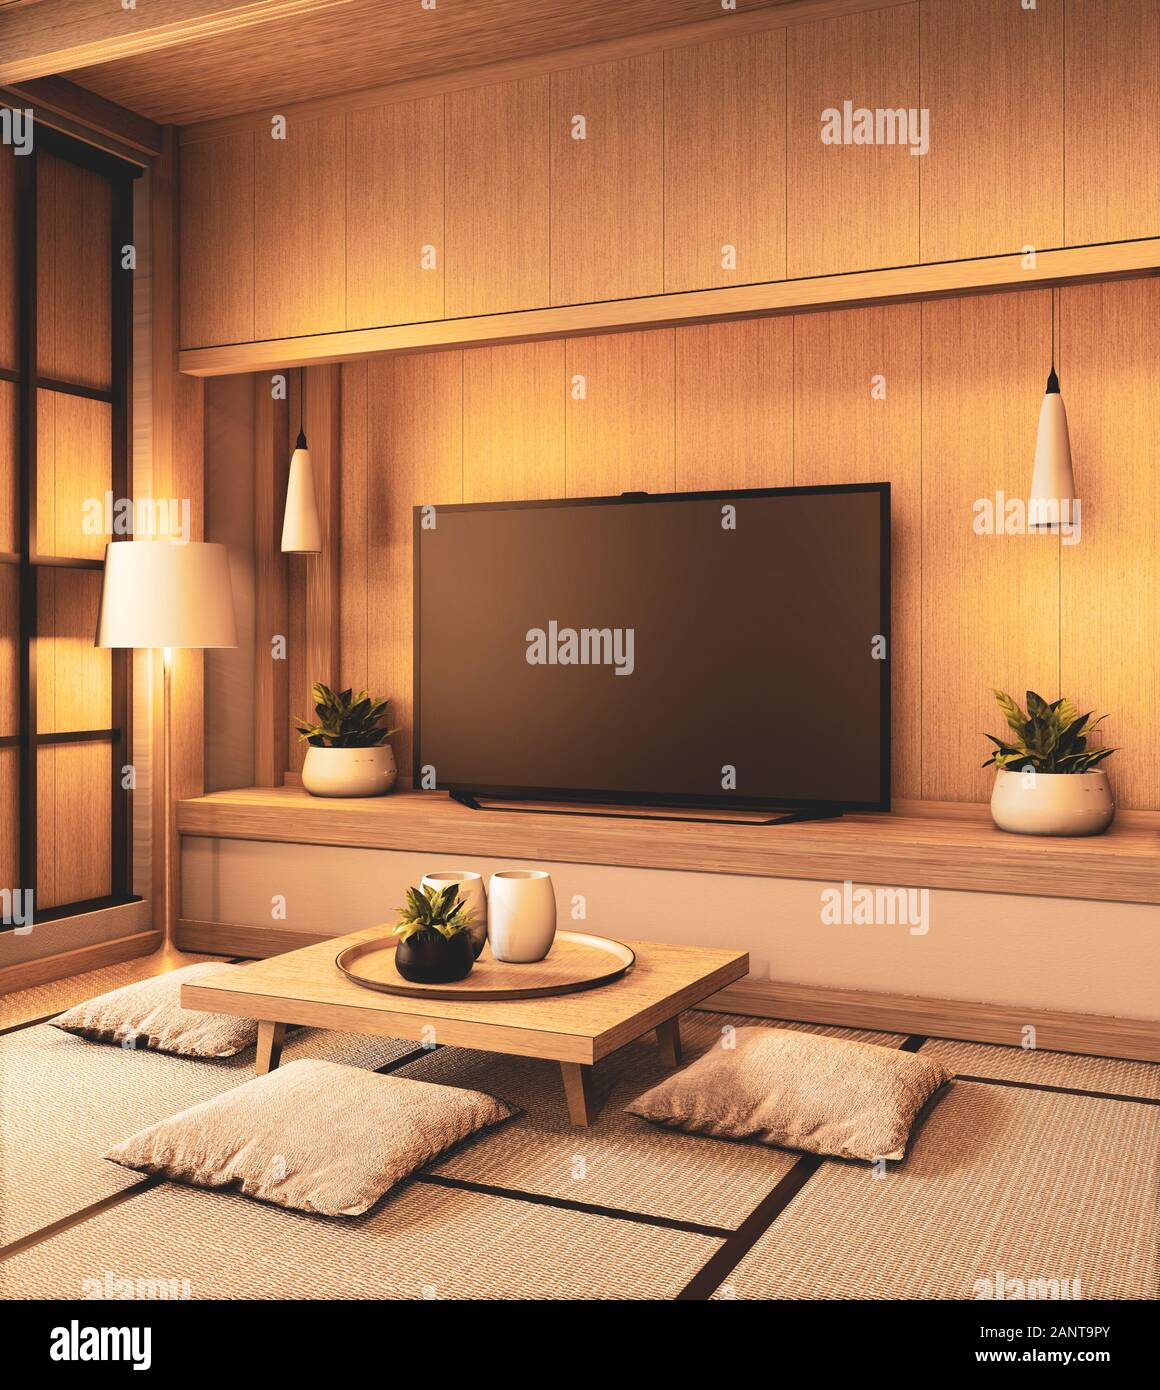 Tv On Empty Wall Background And Wall Wooden Japanese Design On Living Room Zen Style 3d Rendering Stock Photo Alamy